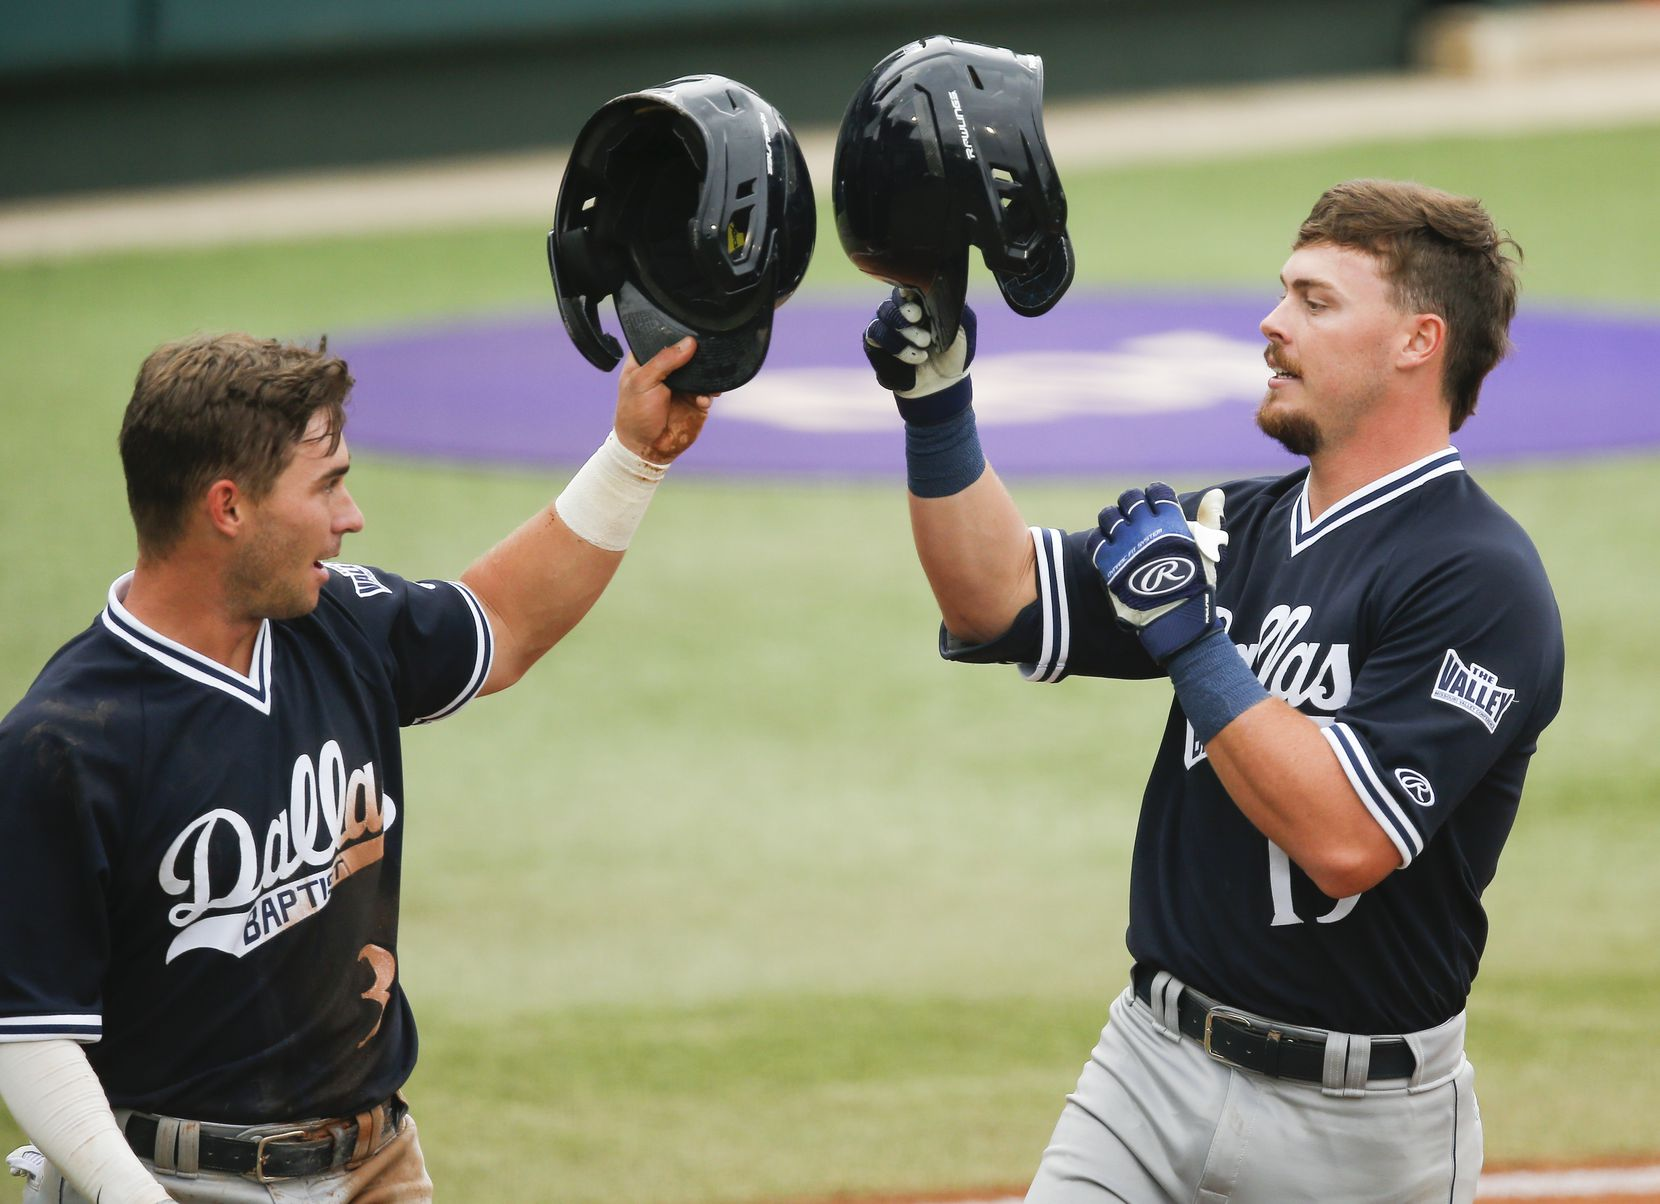 DBU Cole Moore, right, is congratulated by Jackson Glenn (3) after hitting a two-run home run in the first inning during the NCAA Fort Worth Regional baseball tournament against Oregon State at TCU's Lupton Stadium in Fort Worth, Friday, June 4, 2021. Dallas Baptist won 6-5. (Brandon Wade/Special Contributor)